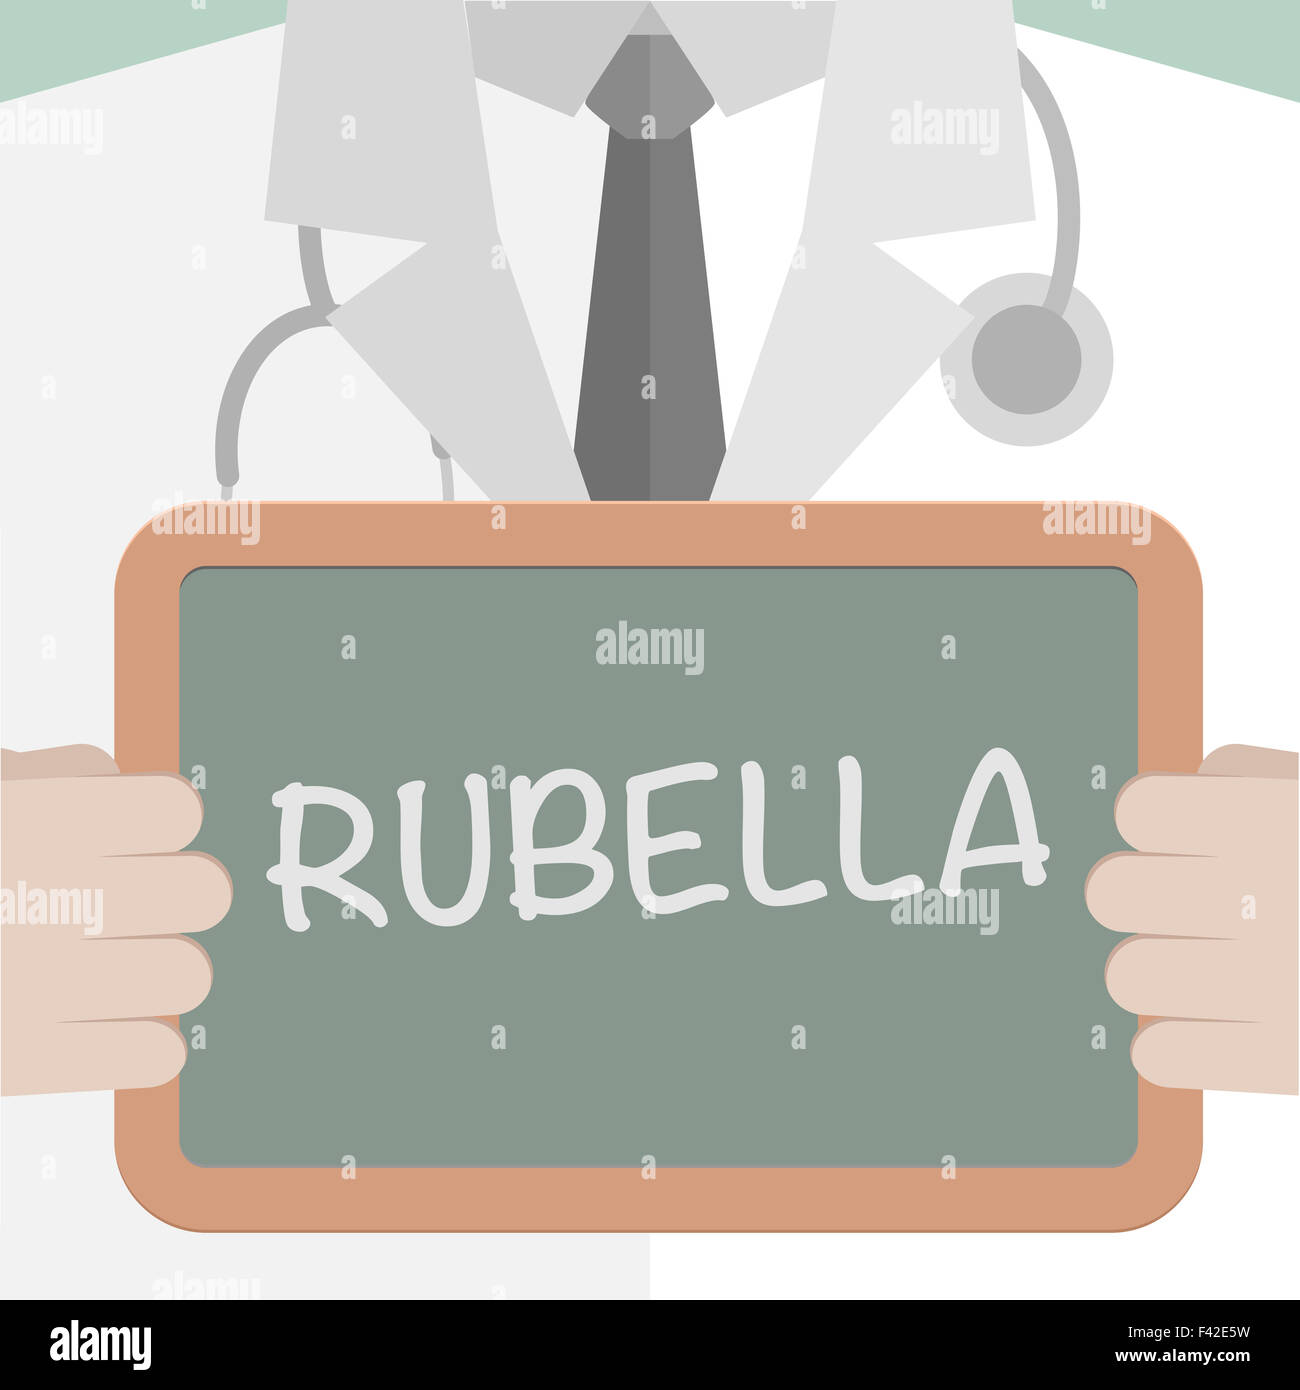 Medical Board Rubella - Stock Image